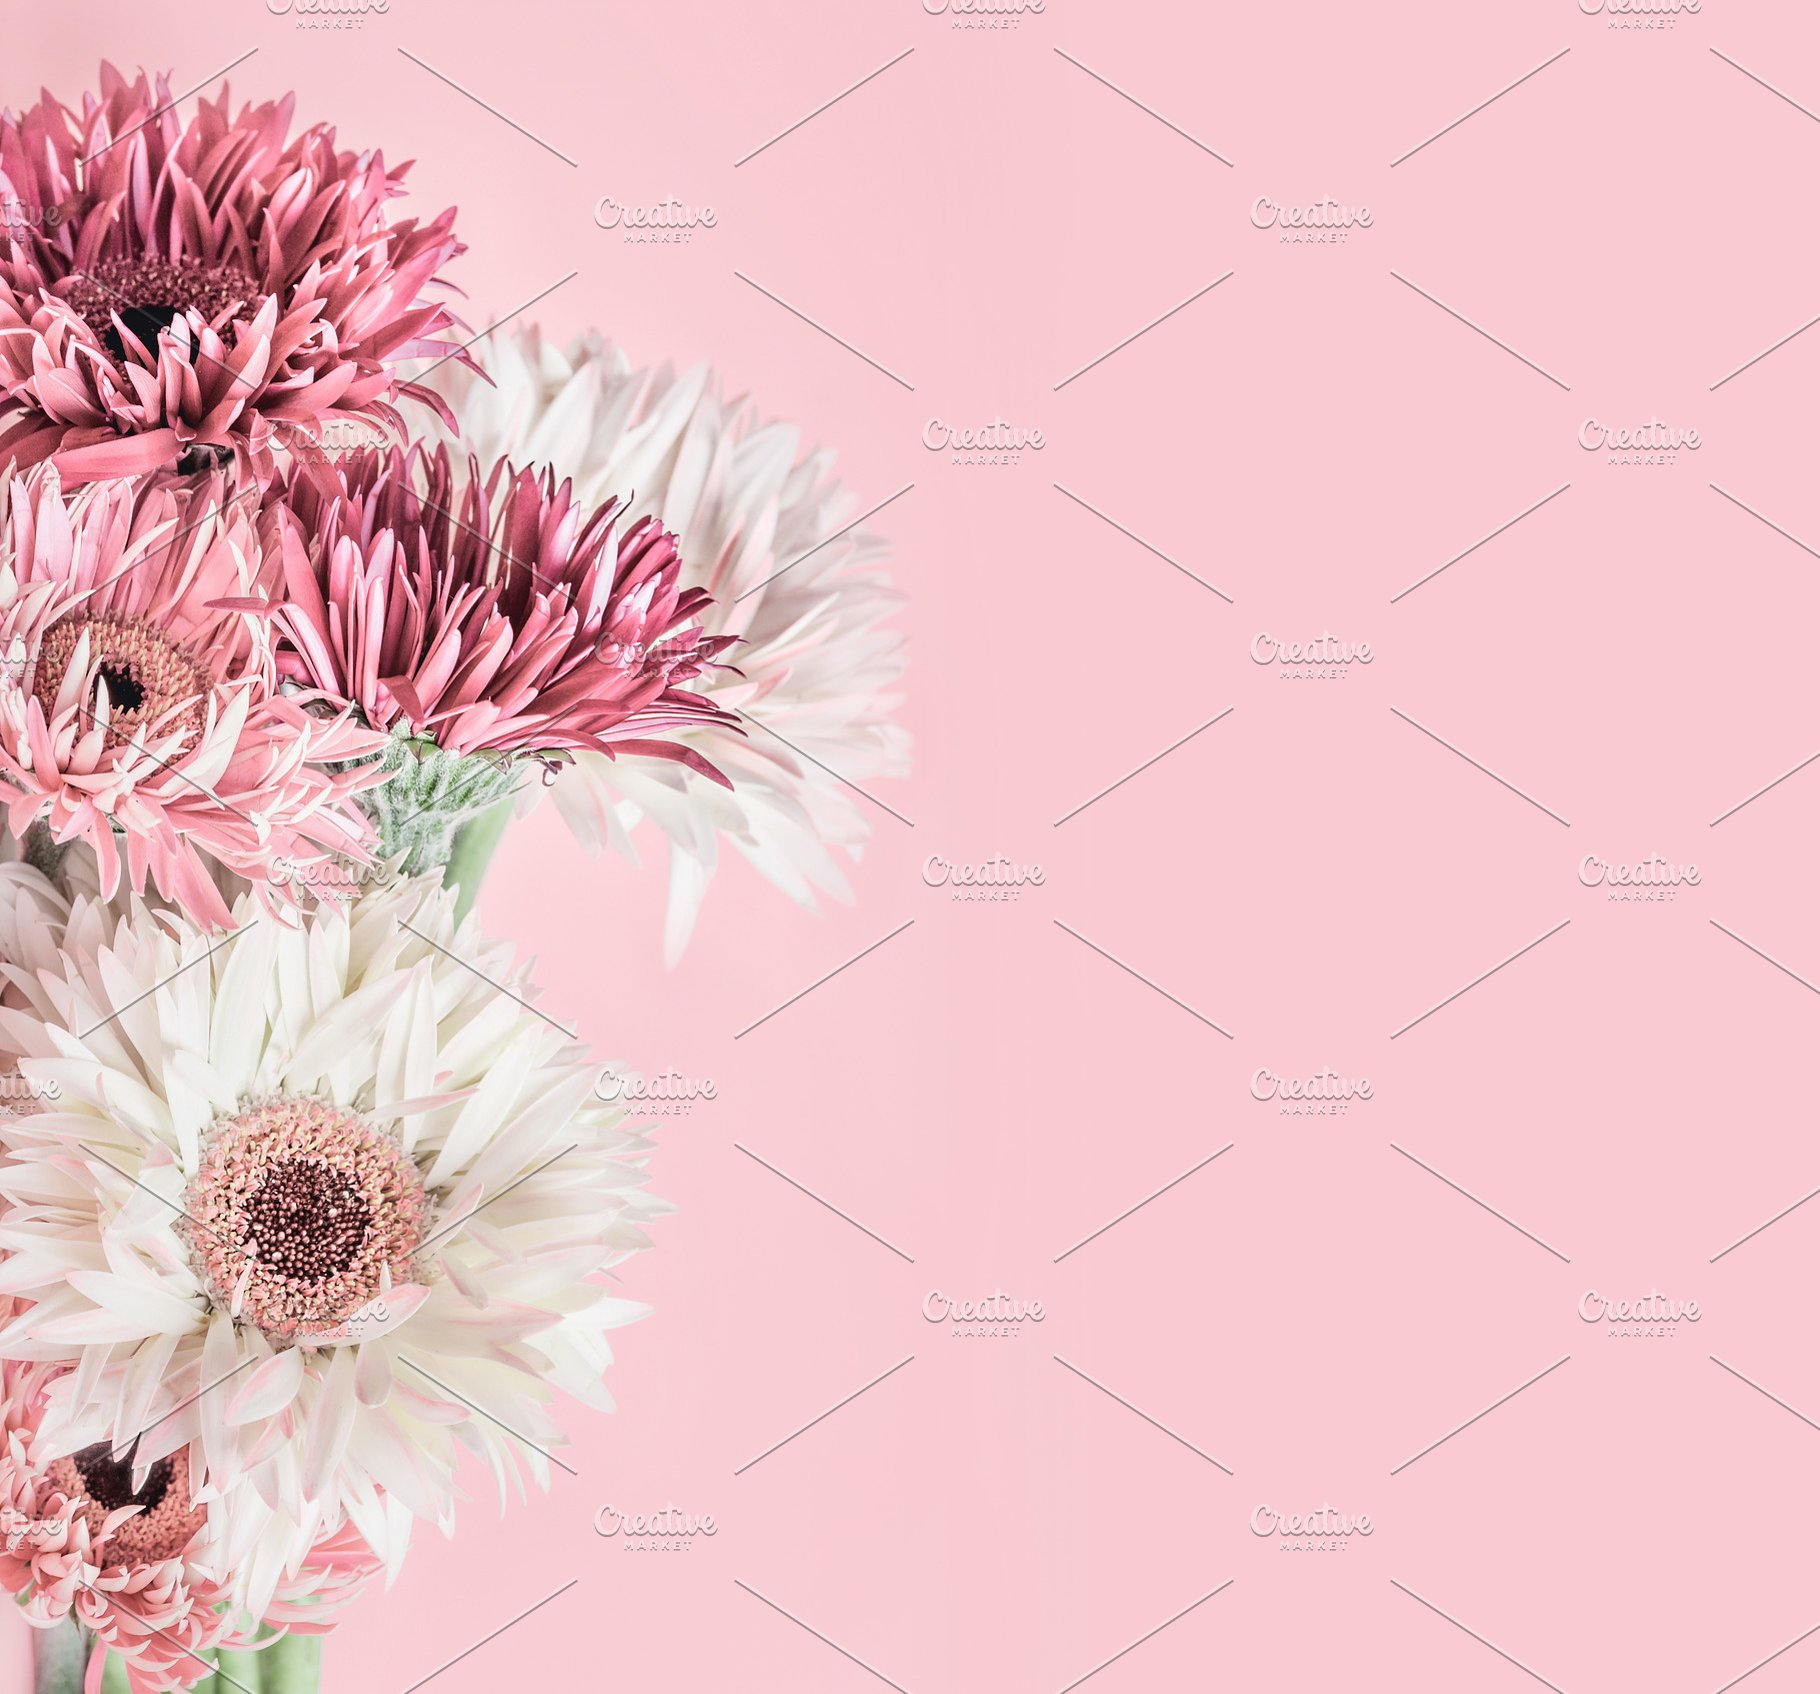 Pastel Pink Floral Background High Quality Abstract Stock Photos